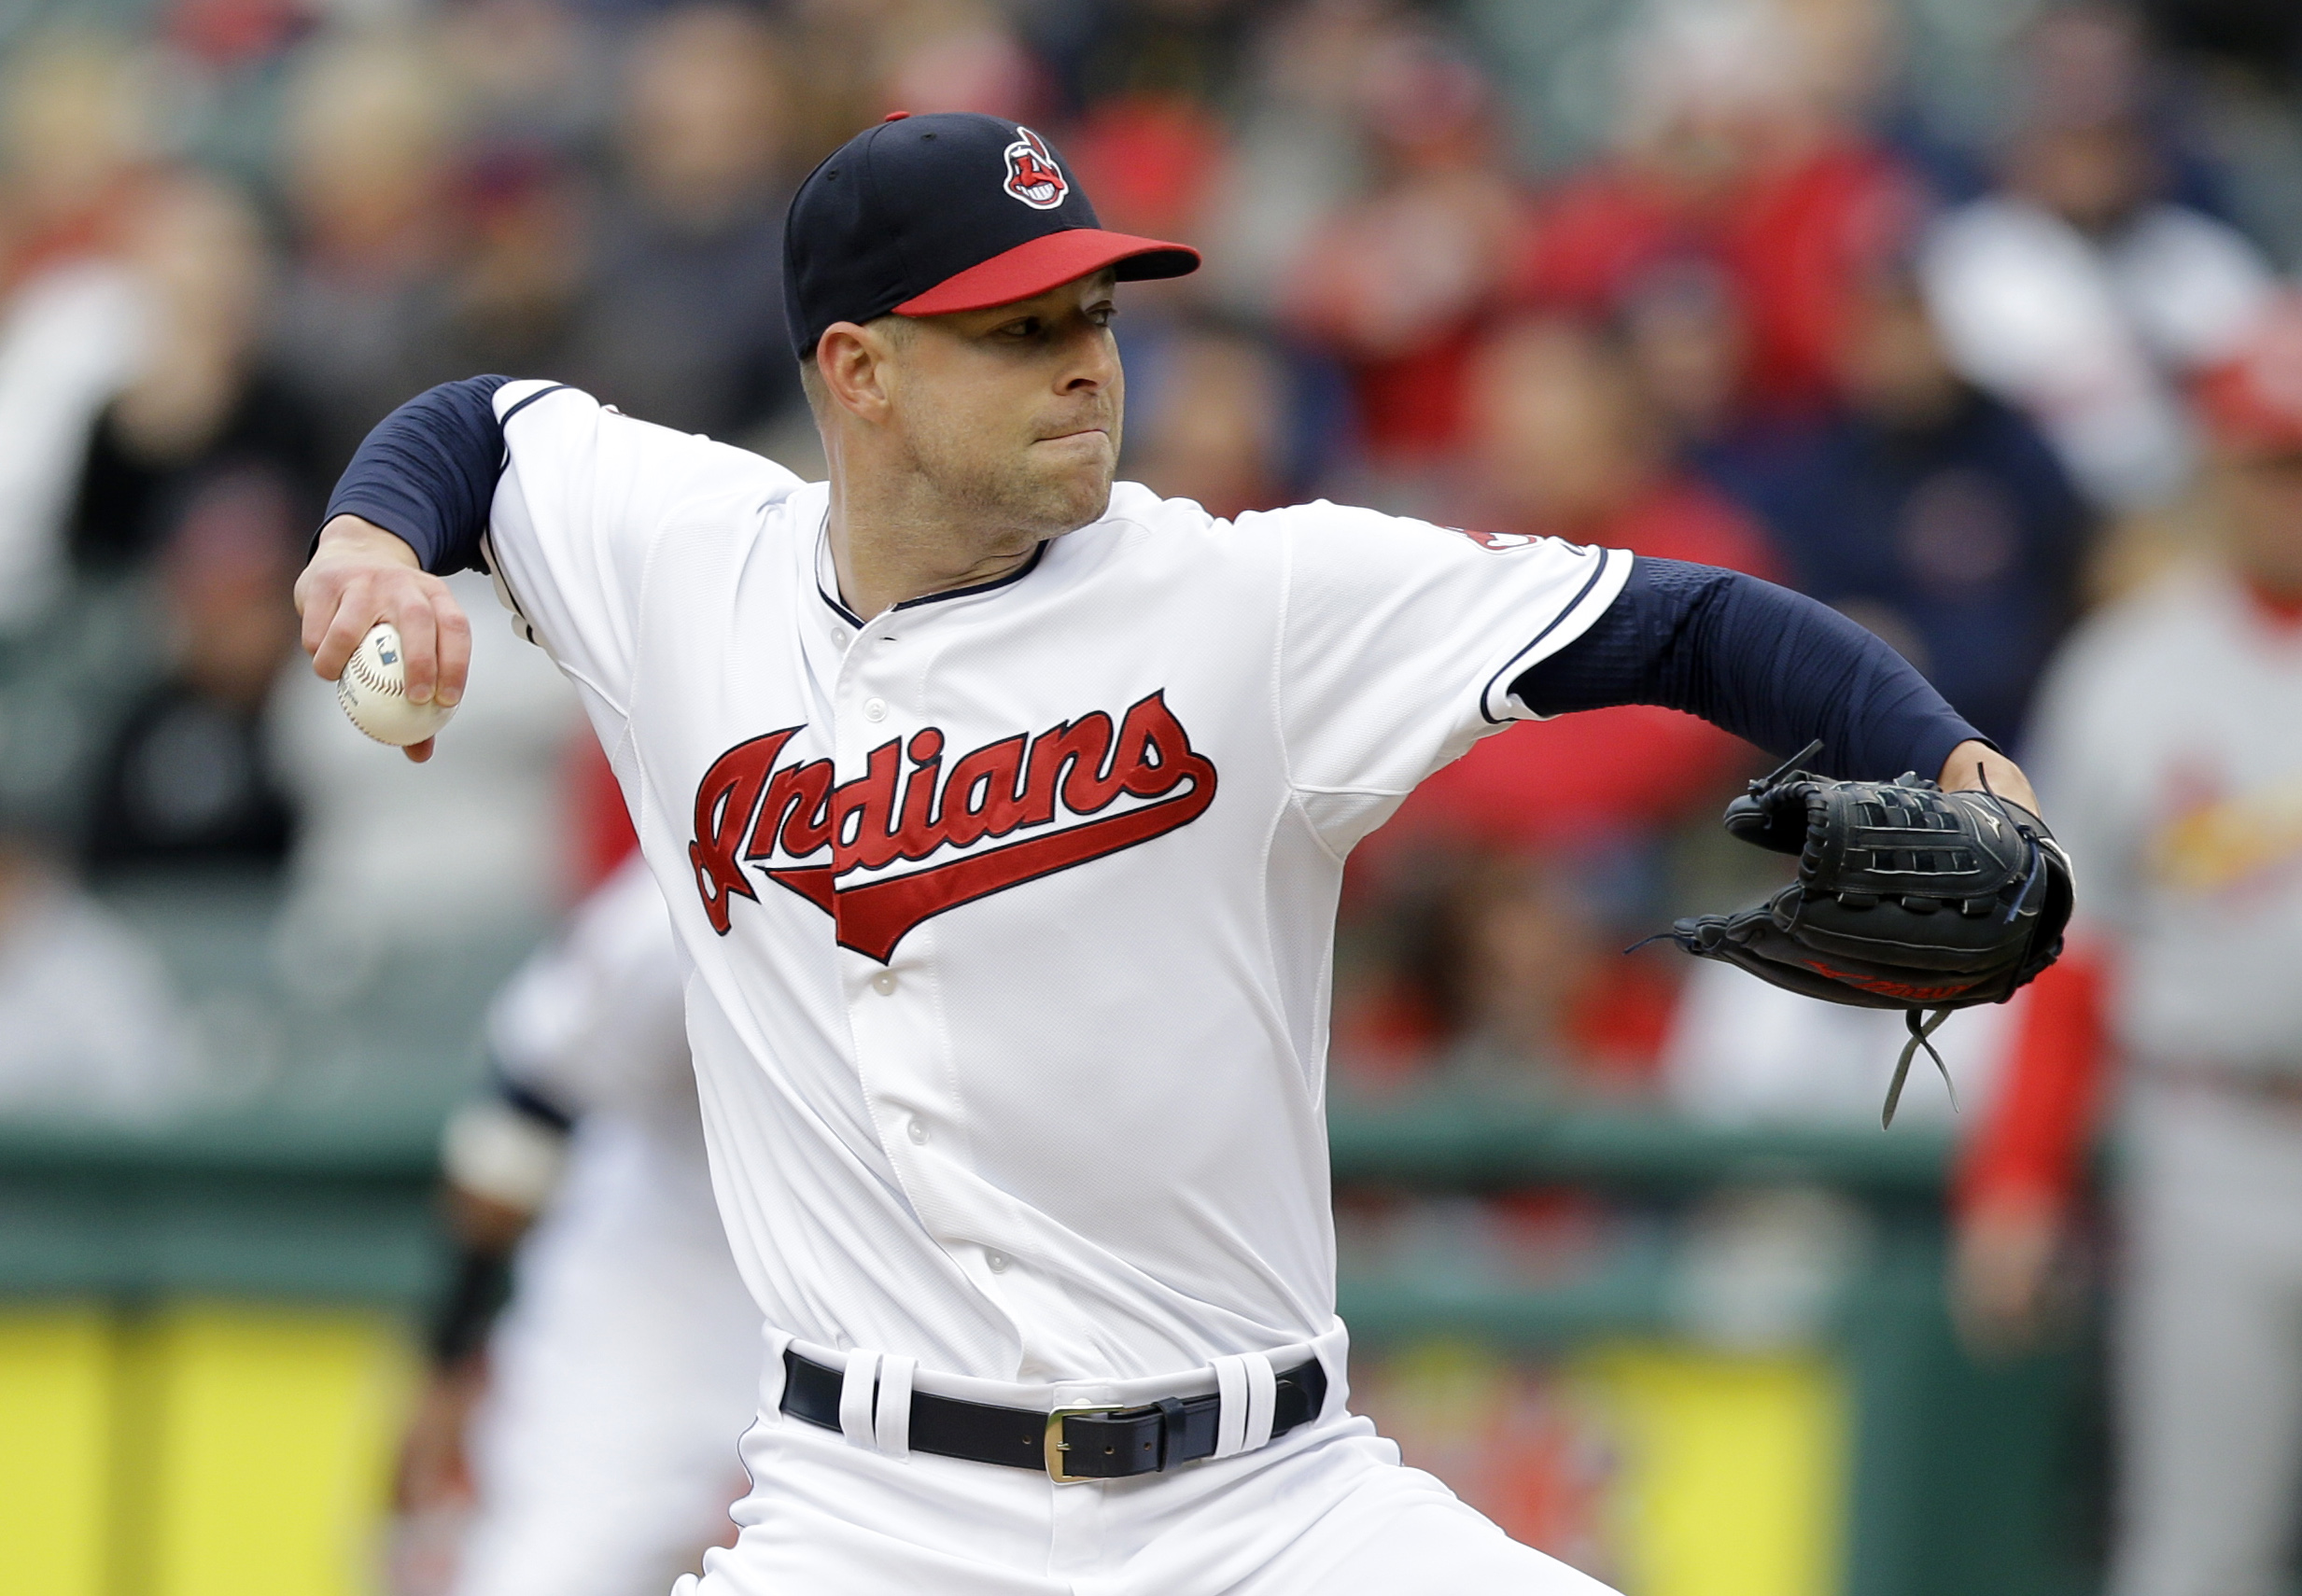 Cleveland Indians starting pitcher Corey Kluber delivers in the first inning of a baseball game against the St. Louis Cardinals, Wednesday, May 13, 2015, in Cleveland. (AP Photo/Tony Dejak)